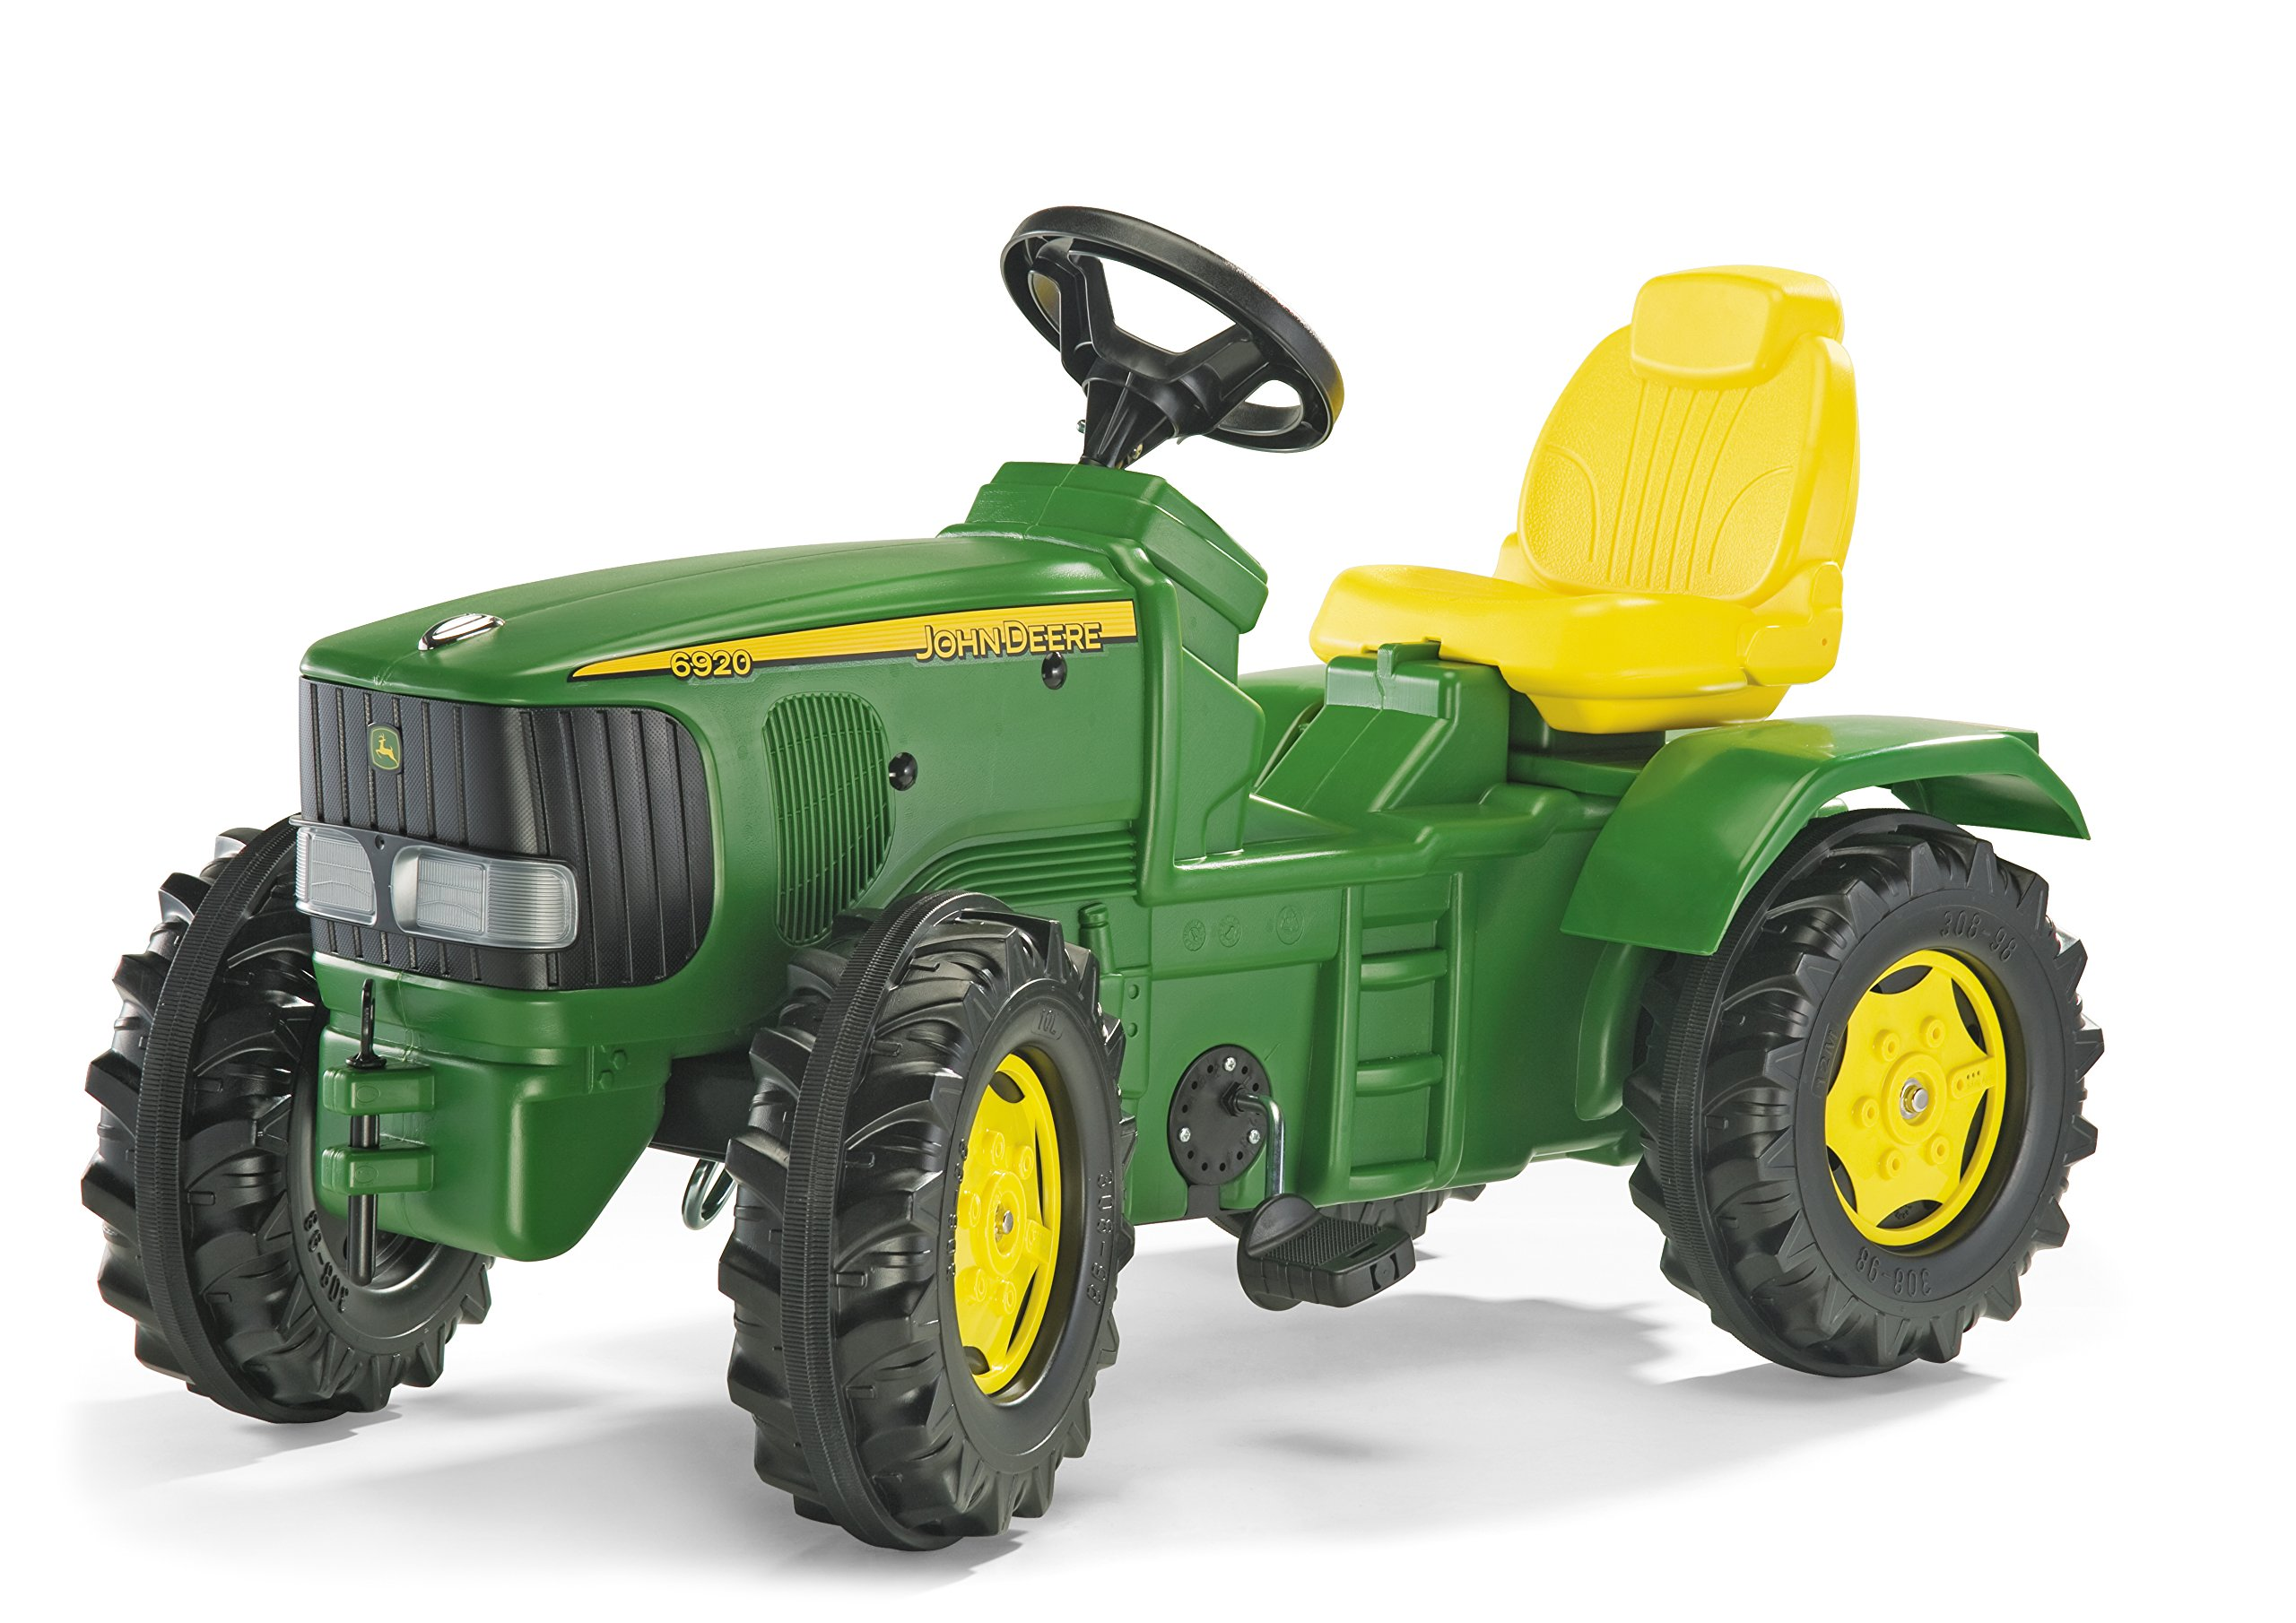 rolly toys John Deere Farmtrac Pedal Tractor with Front and Rear Hitches for Additional Accessories, Youth Ages 4+